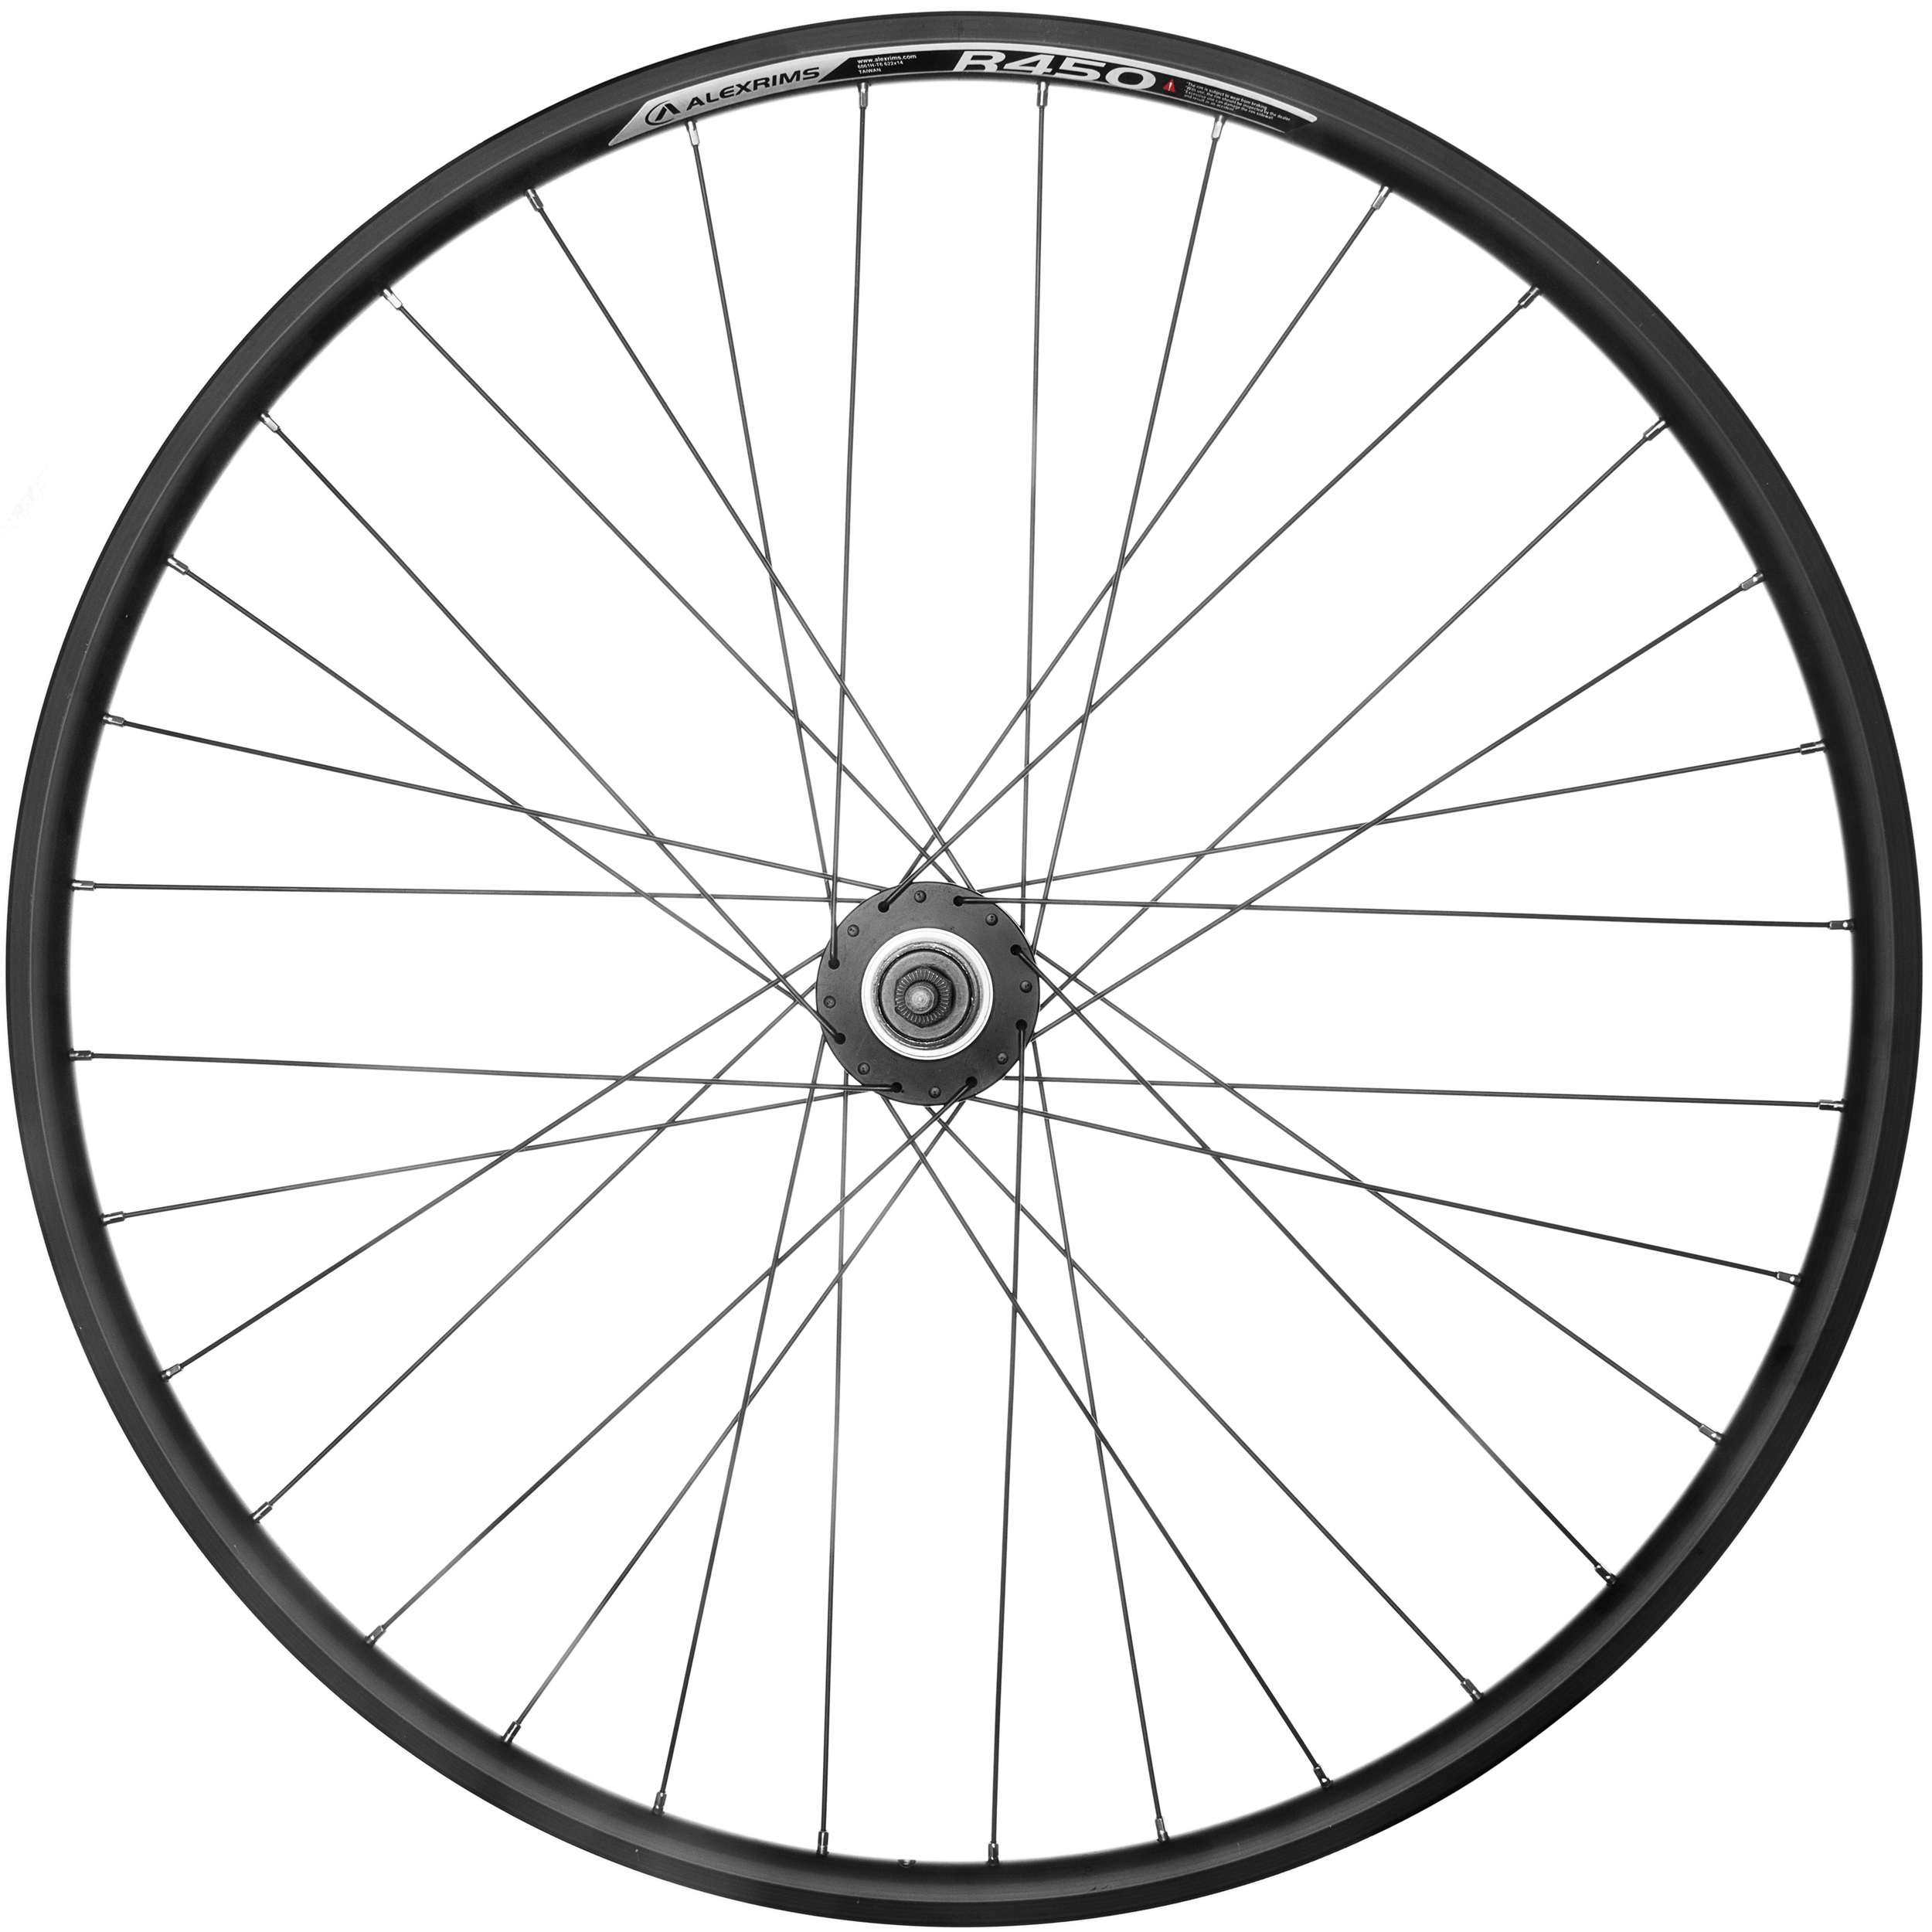 It is an image of Divine Bike Wheel Drawing